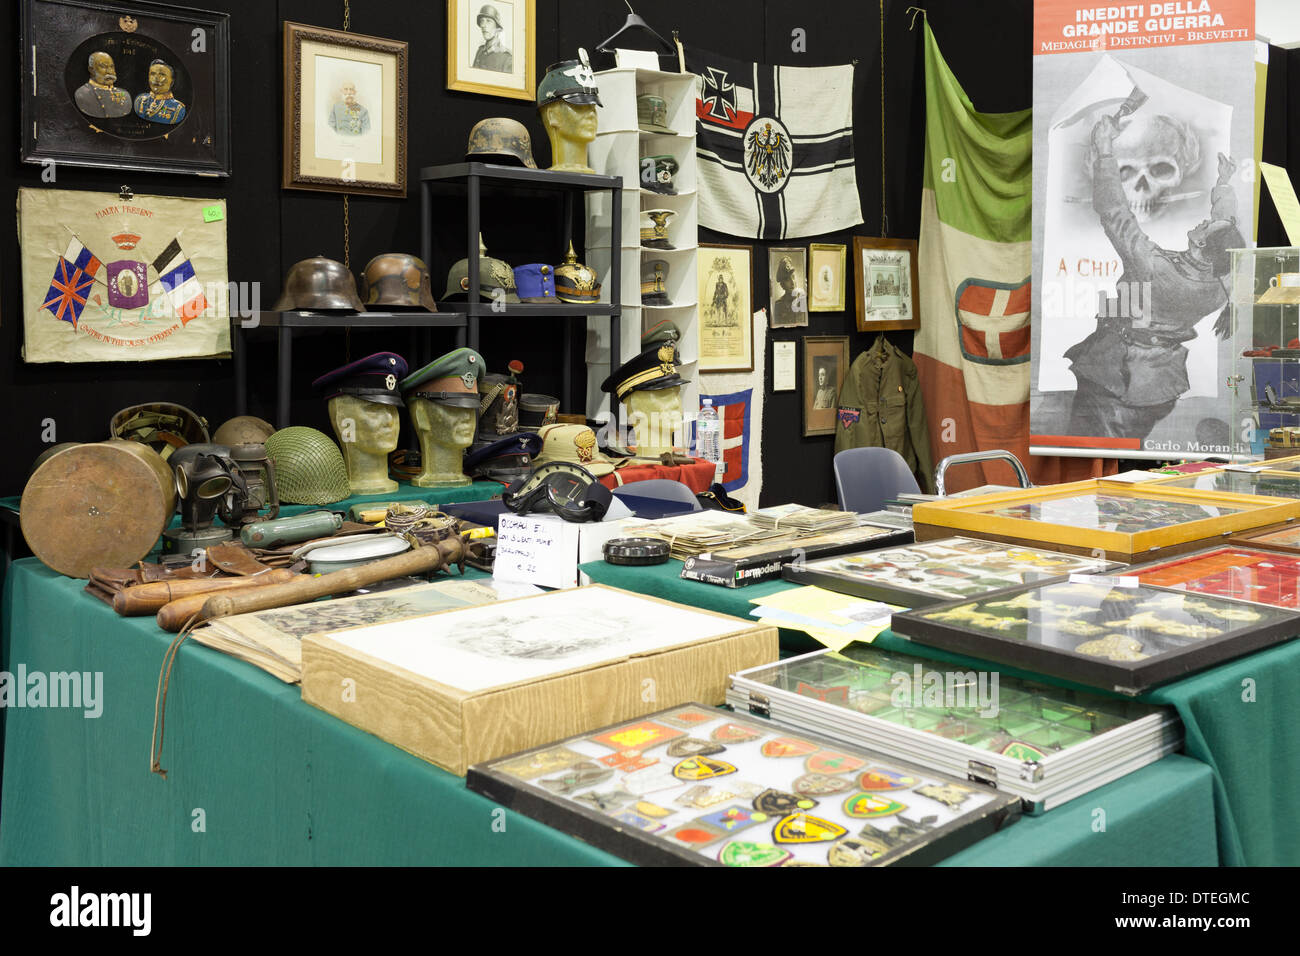 ROME, ITALY - FEBRUARY 16, 2014: At Fiera di Roma, various military collectible items are displayed and available for sale on the occasion of Rome Military And Soft-Air Exhibition. Credit:  Corina Daniela Obertas/Alamy Live News - Stock Image